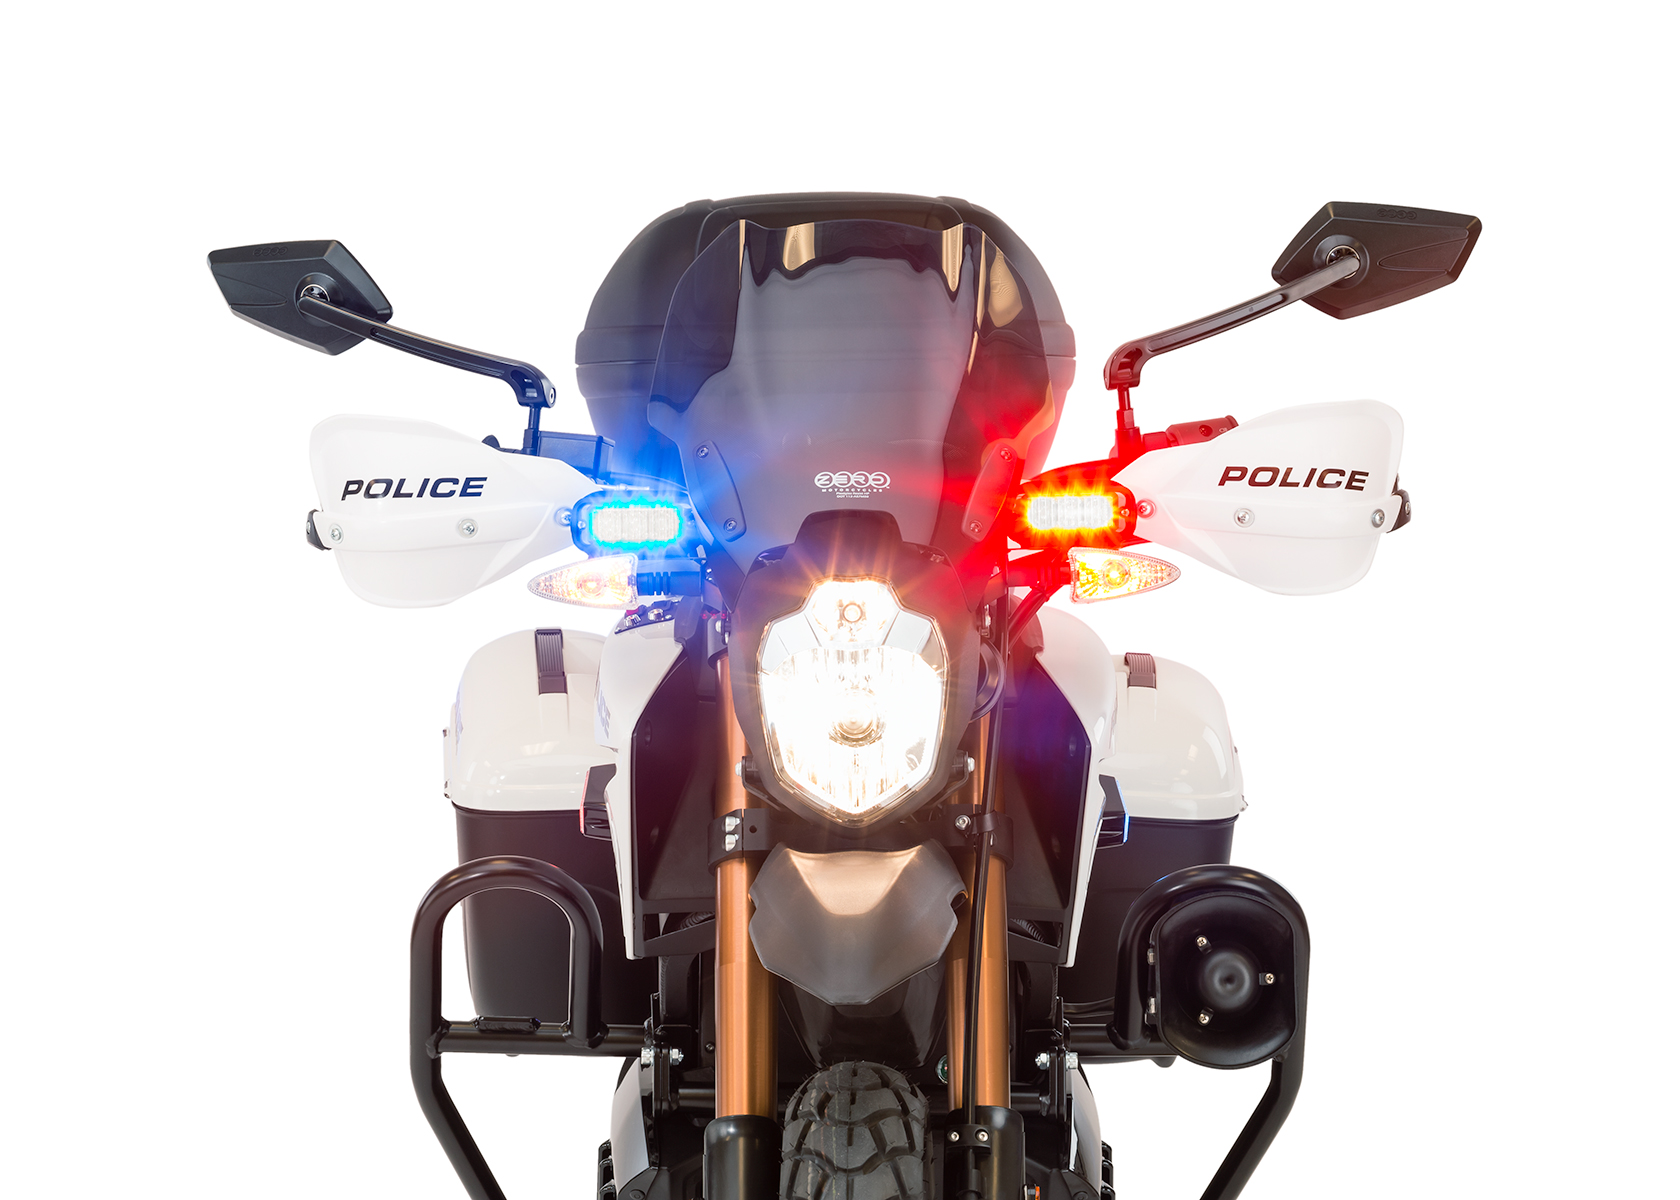 2013 Zero Police Electric Motorcycle: Front view, Lights on